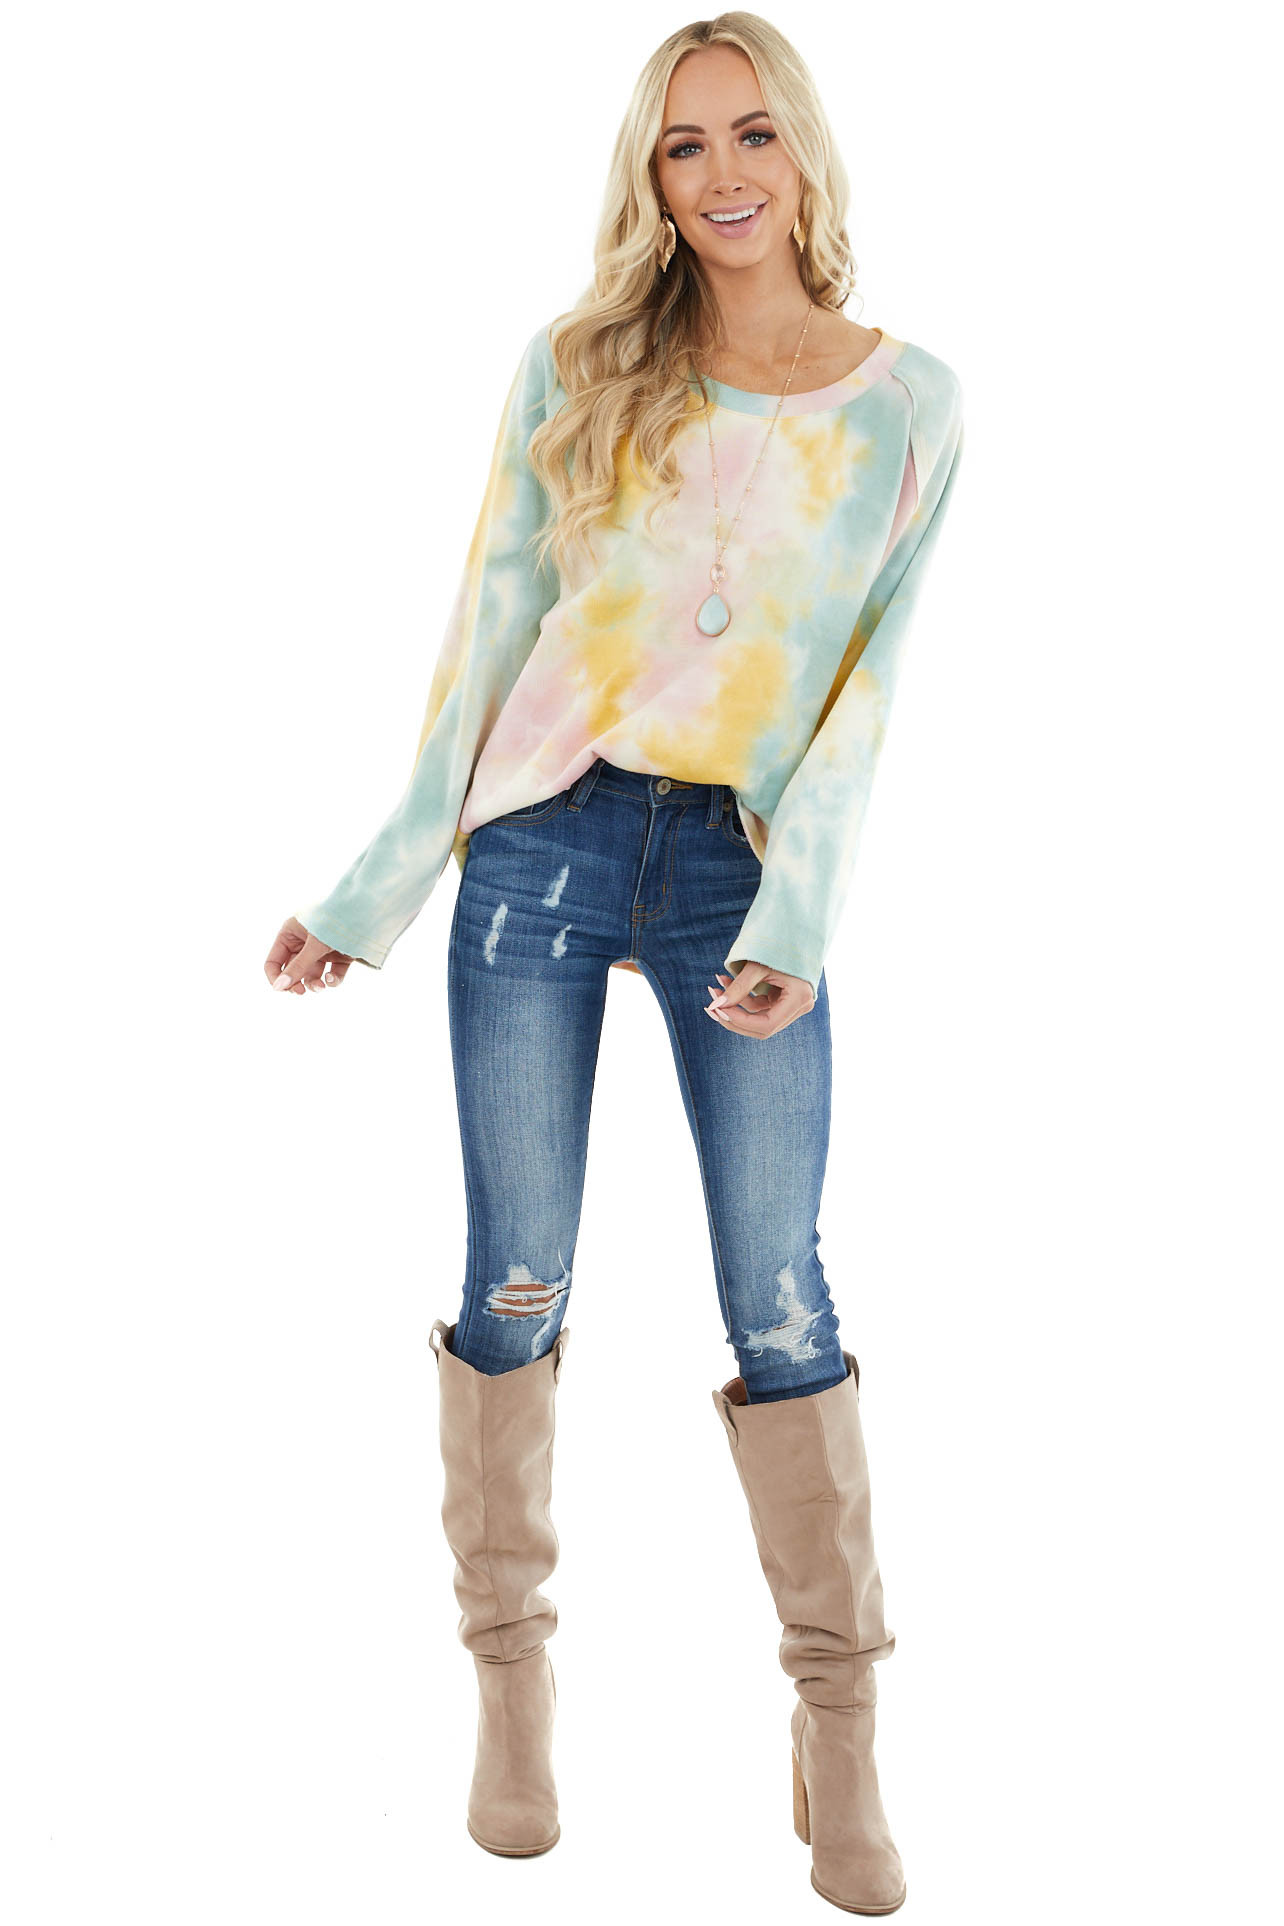 Straw Yellow and Dusty Teal Long Sleeve Tie Dye Top